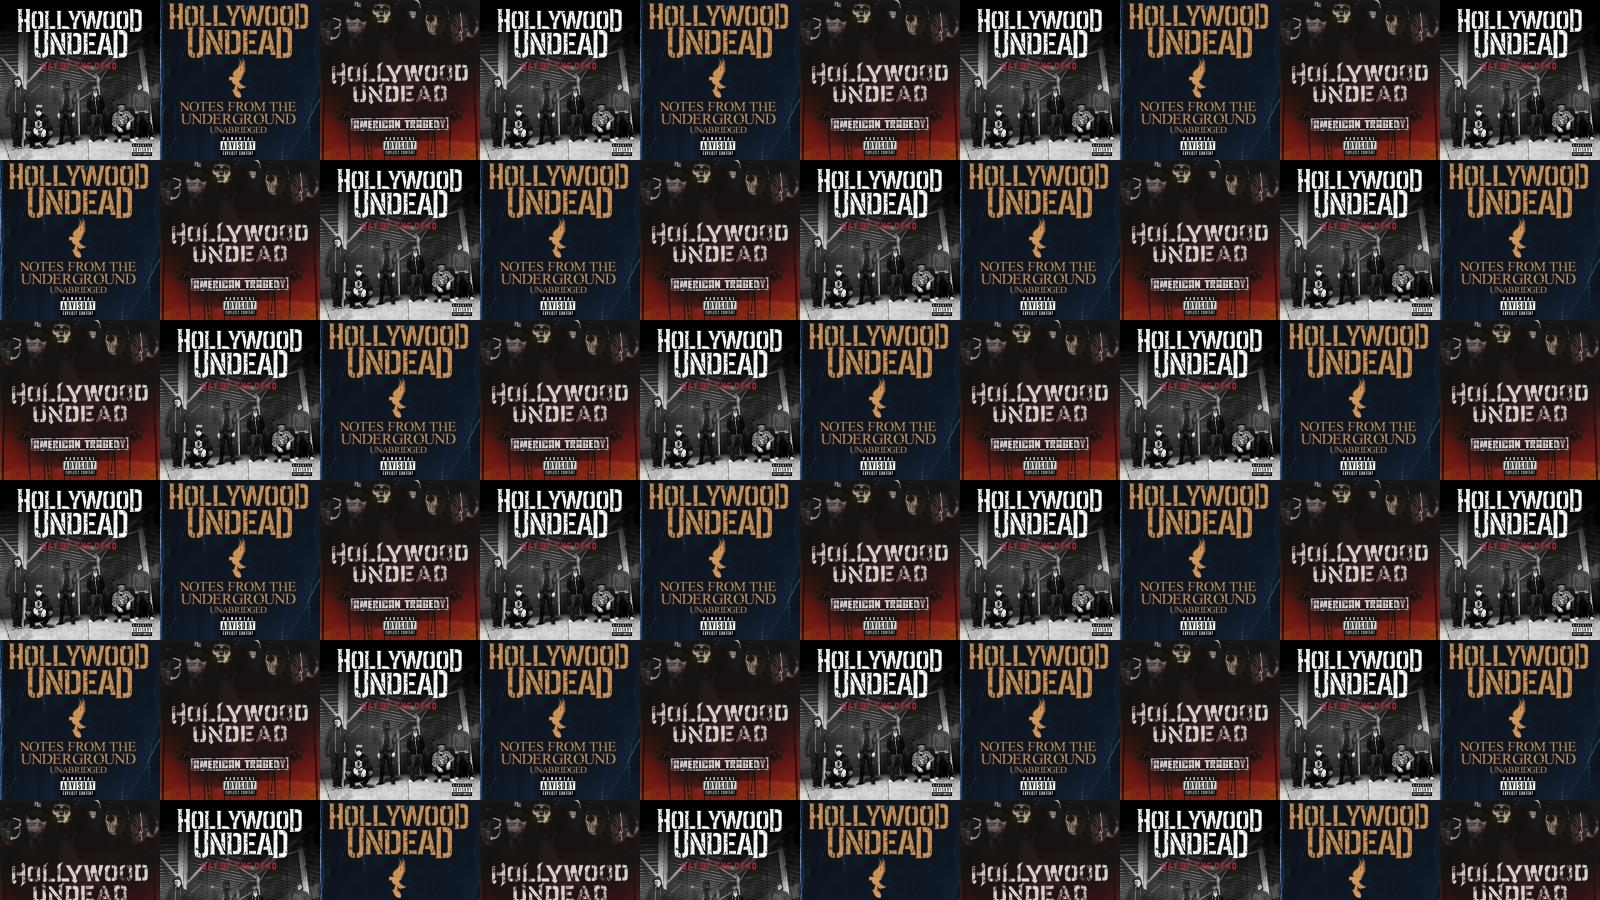 Hollywood Undead Day Dead Notes From Underground Deluxe Wallpaper Tiled Desktop